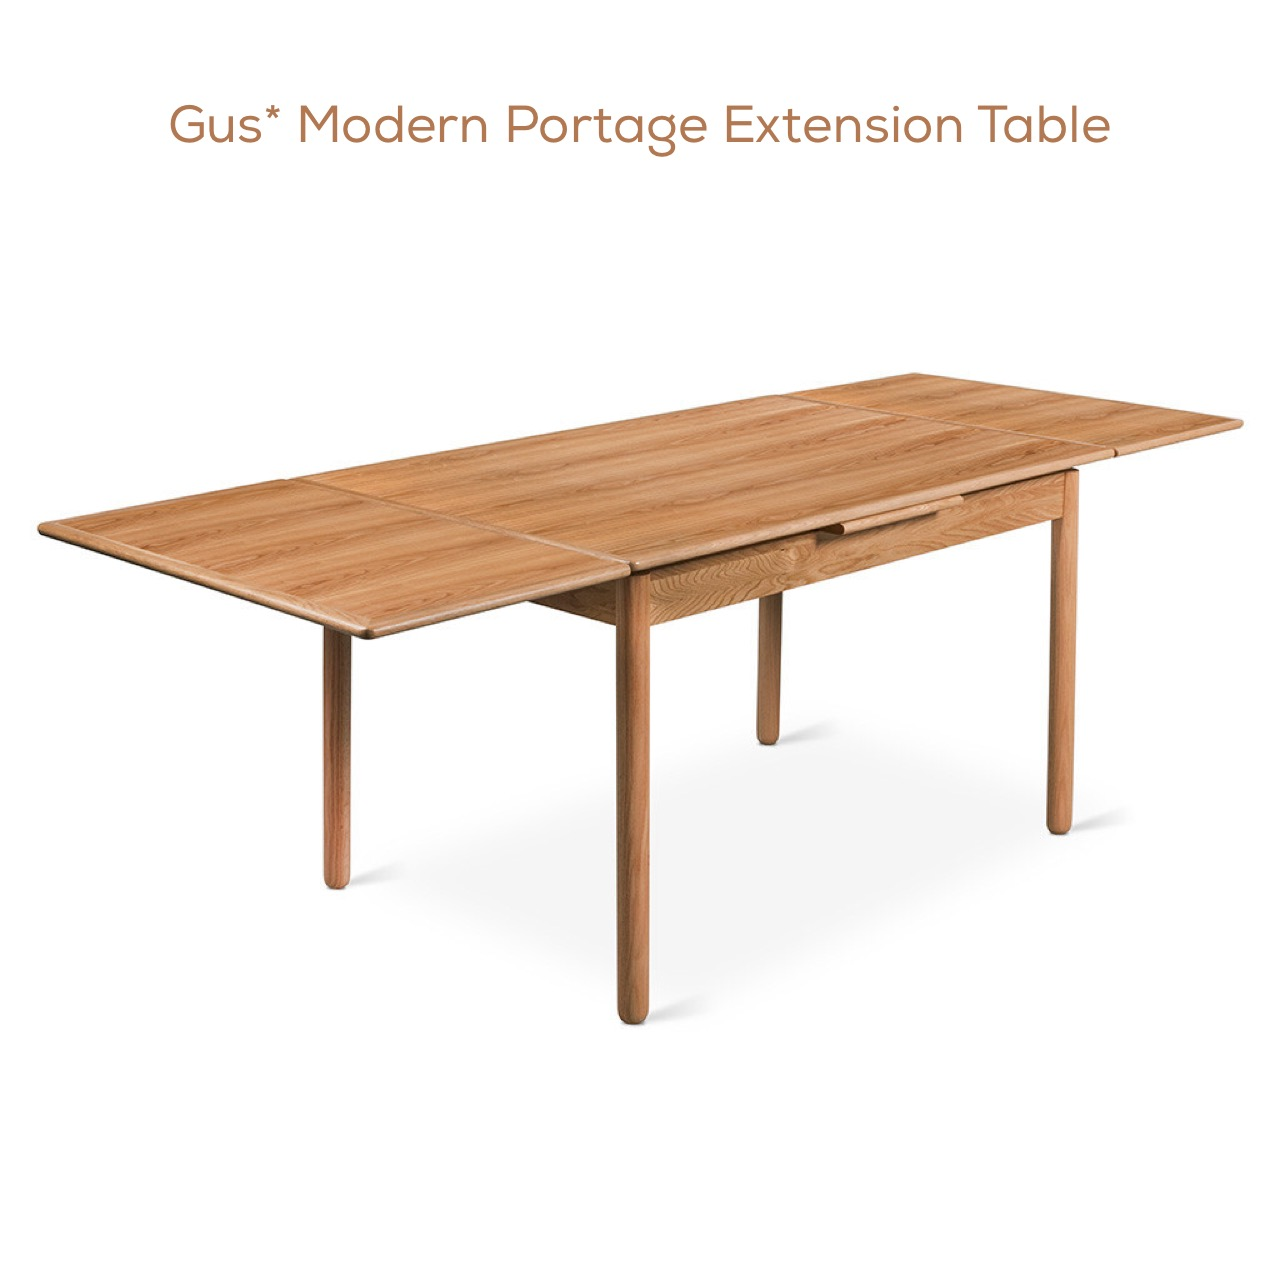 Gus Modern Portage Extension Table